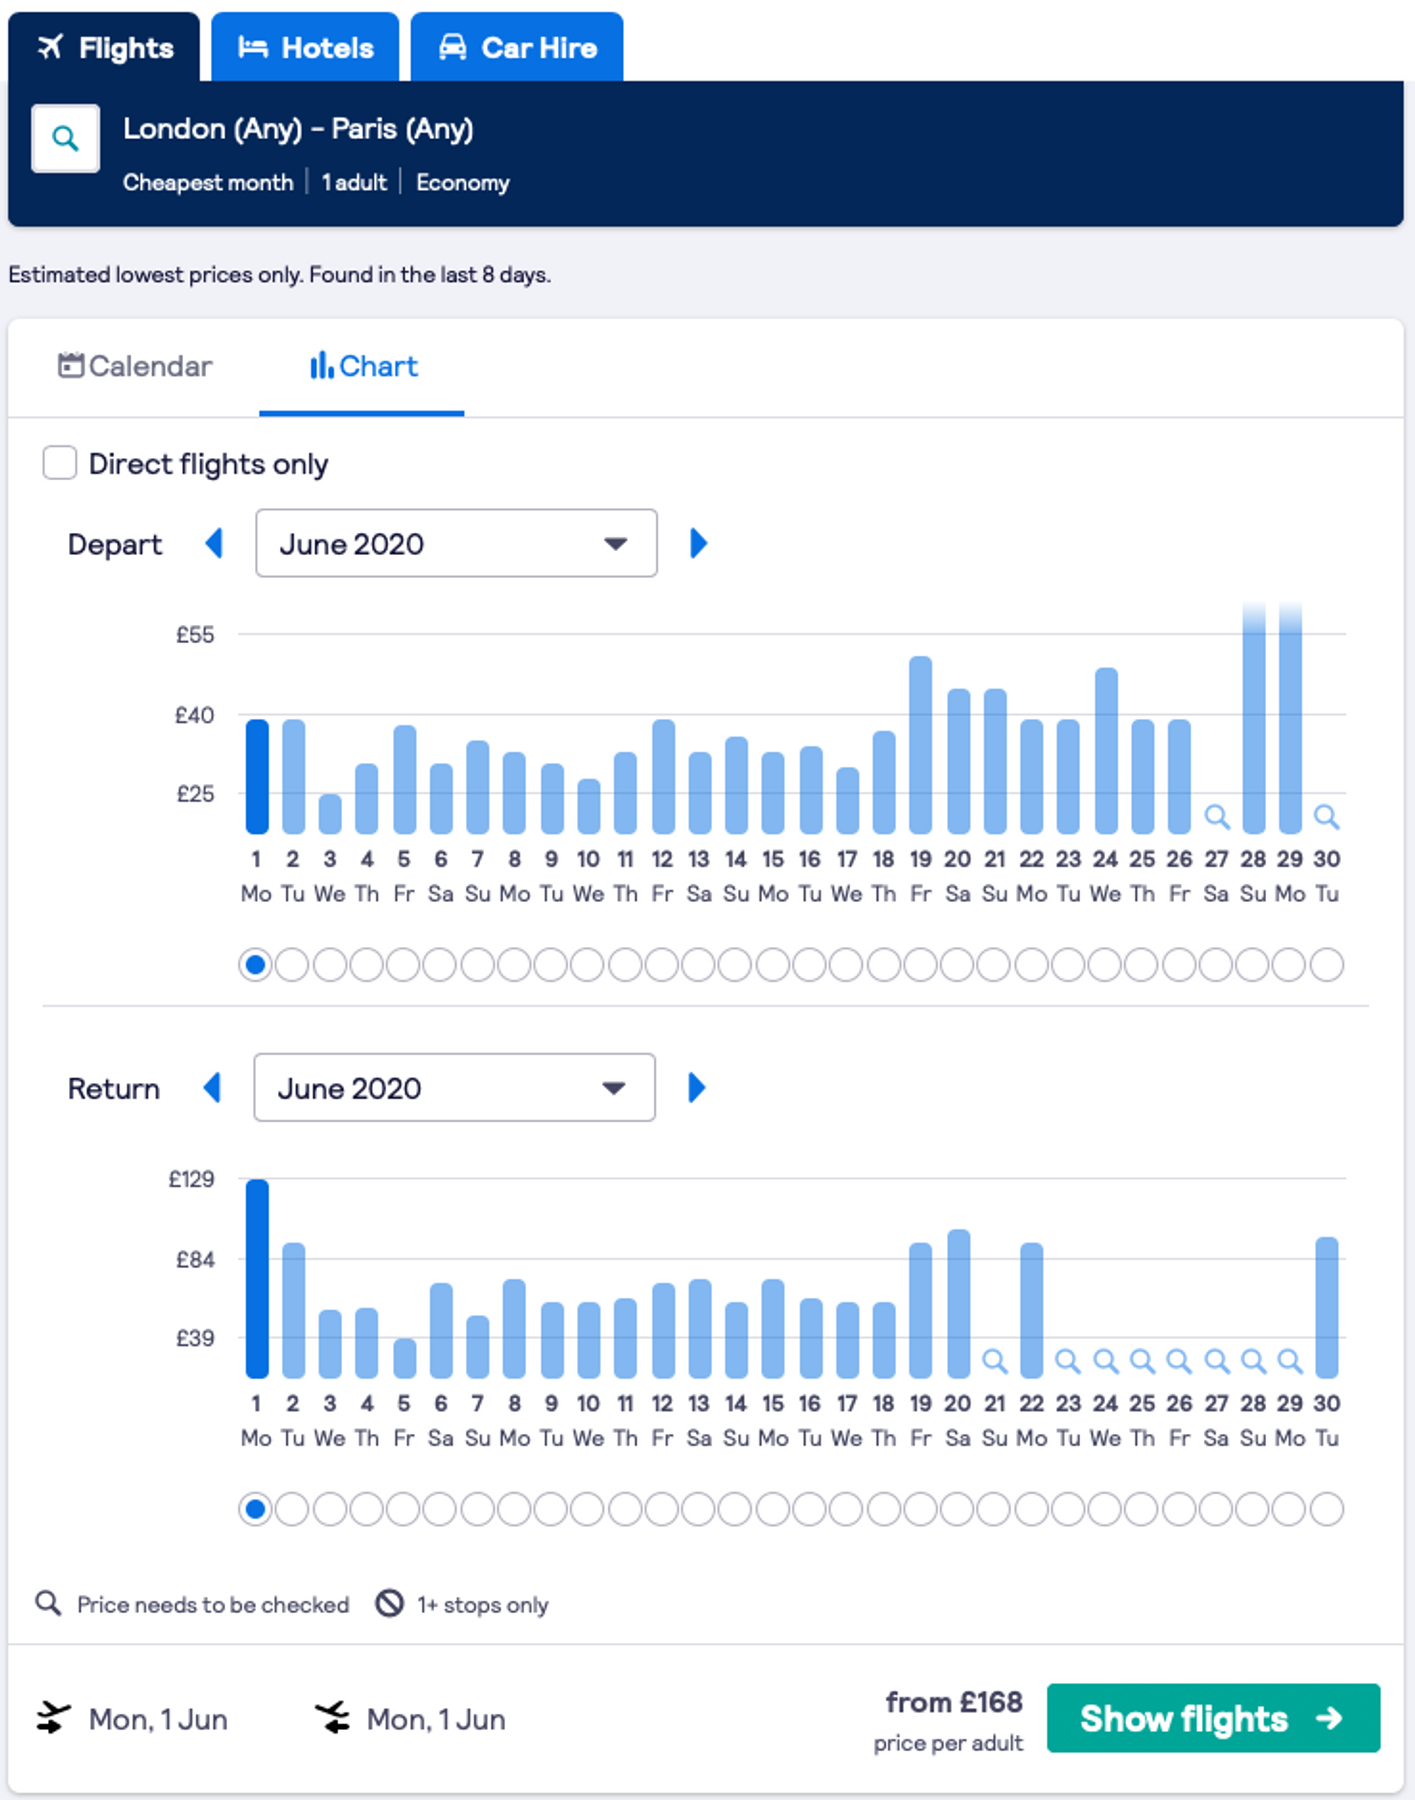 Easy to see data for last minute hotel deals